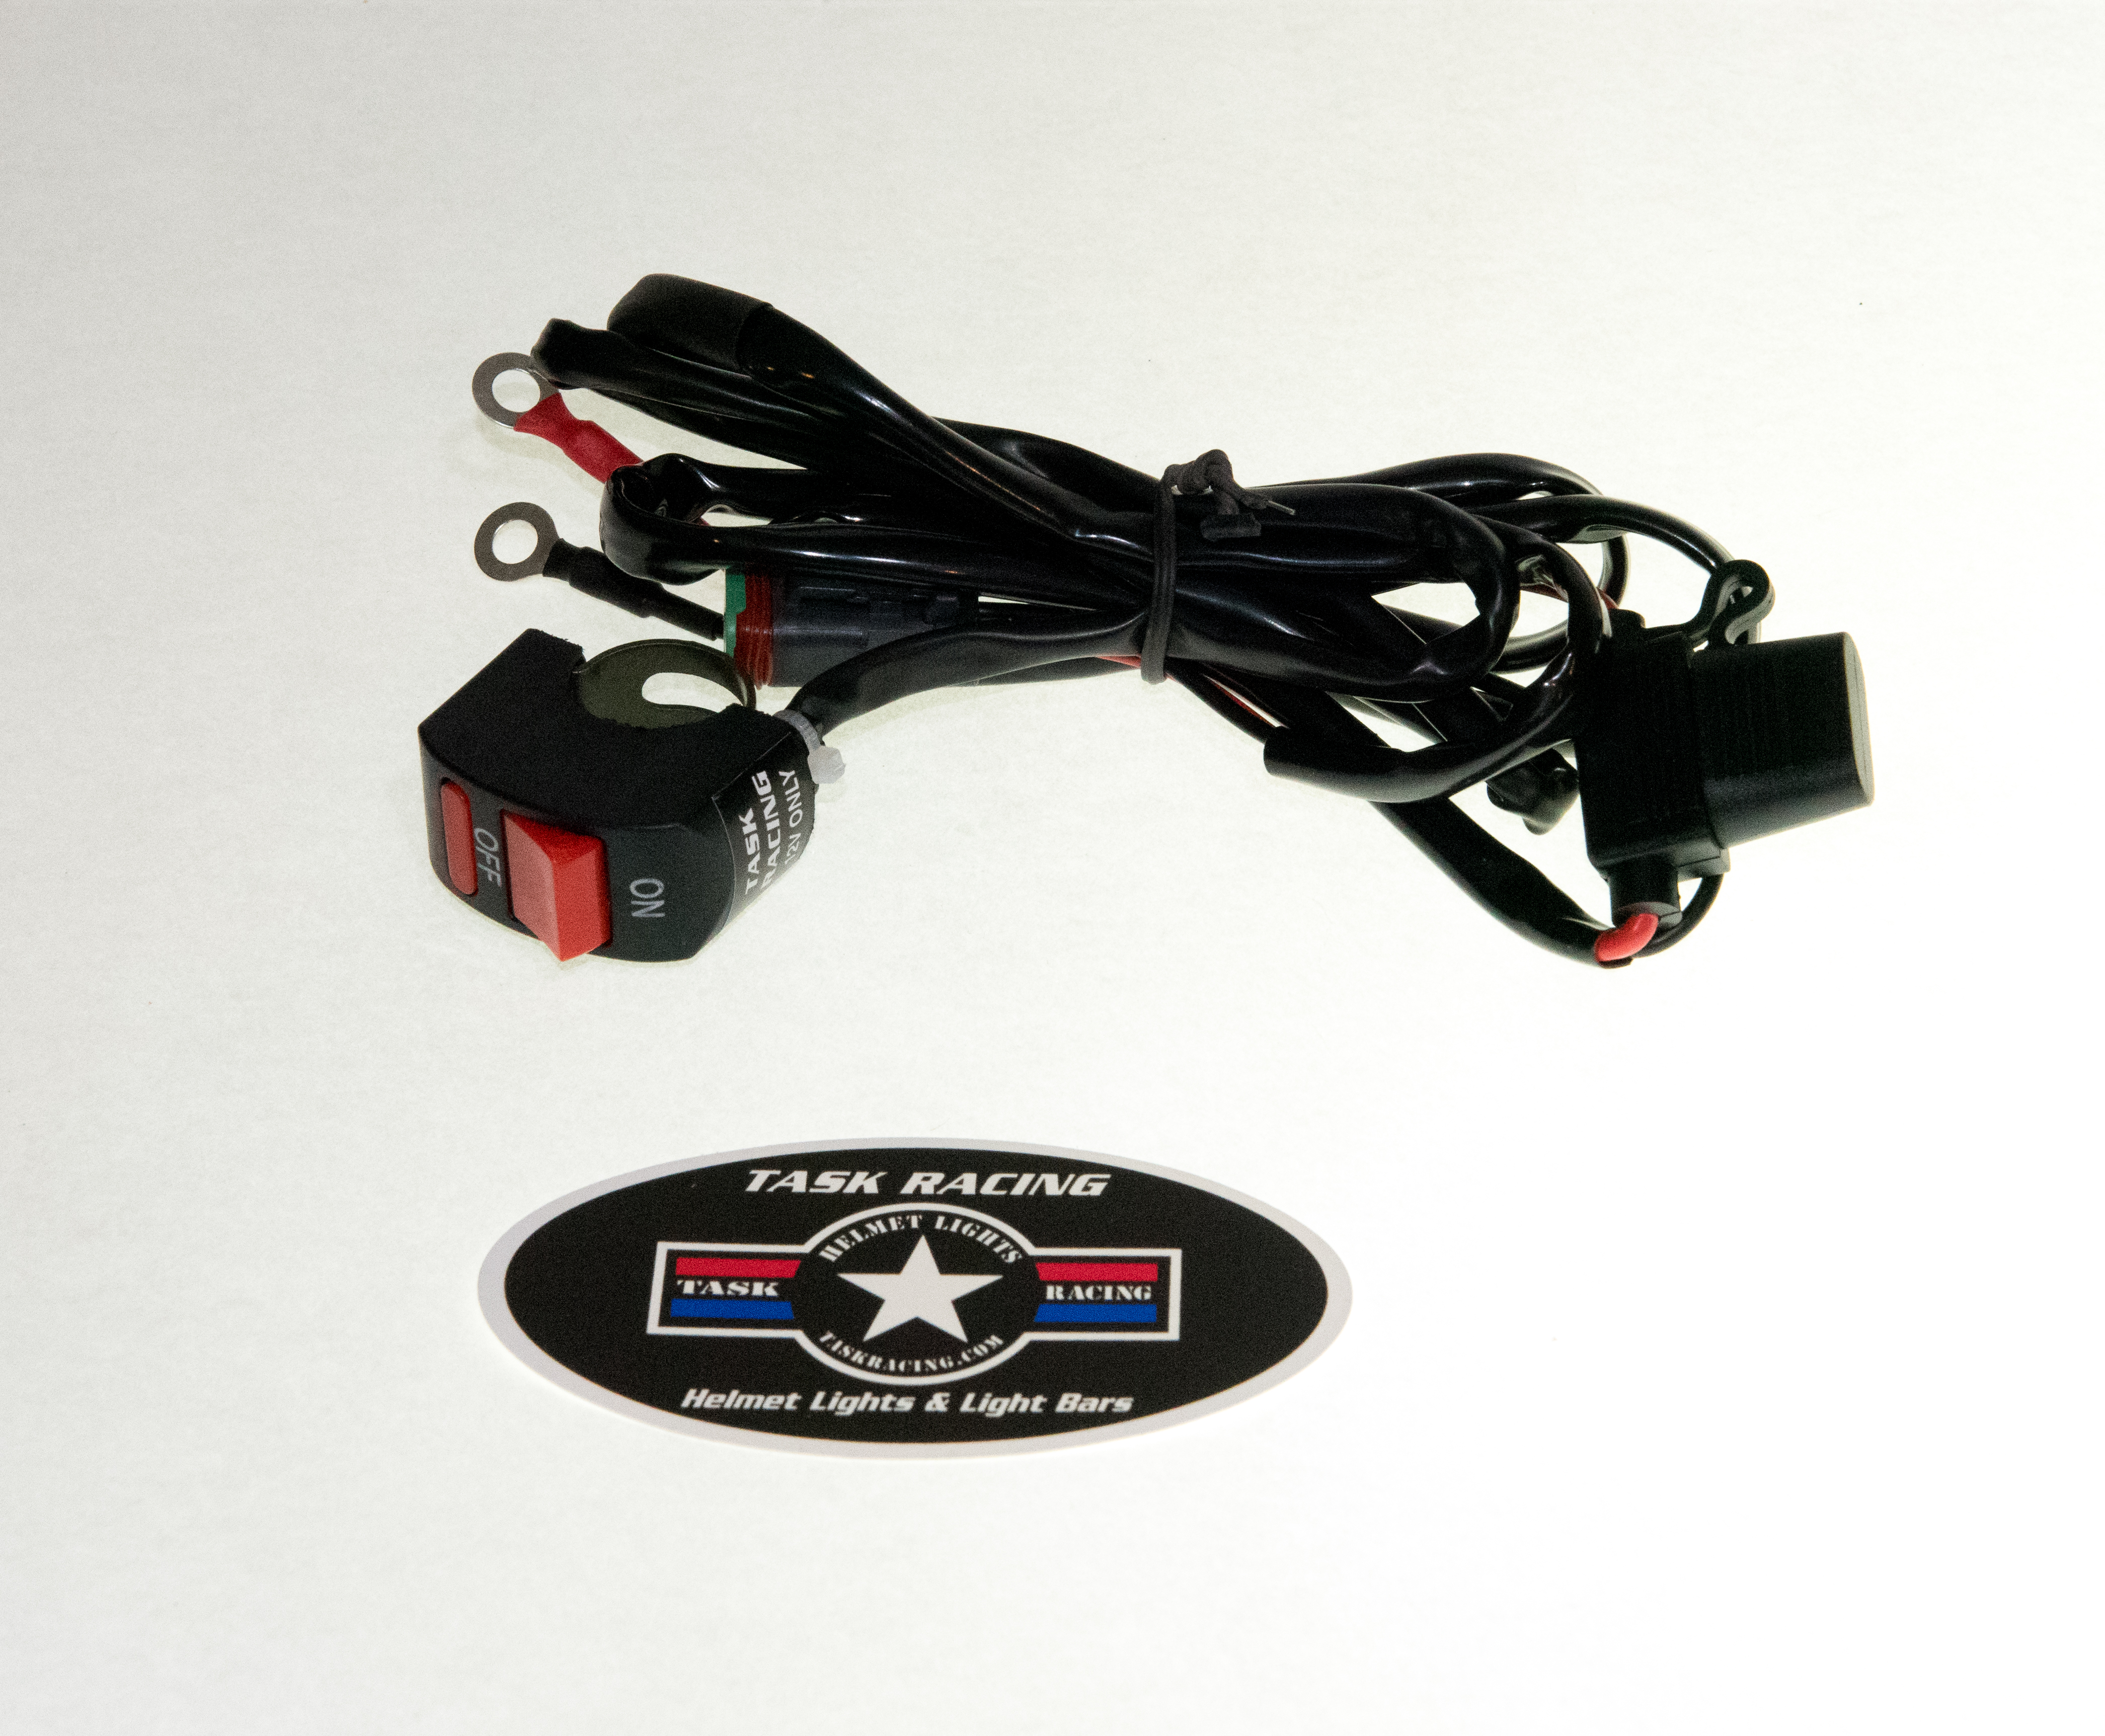 Hardwire Wire Harness for On-Board E-Start Battery System – Task Racing